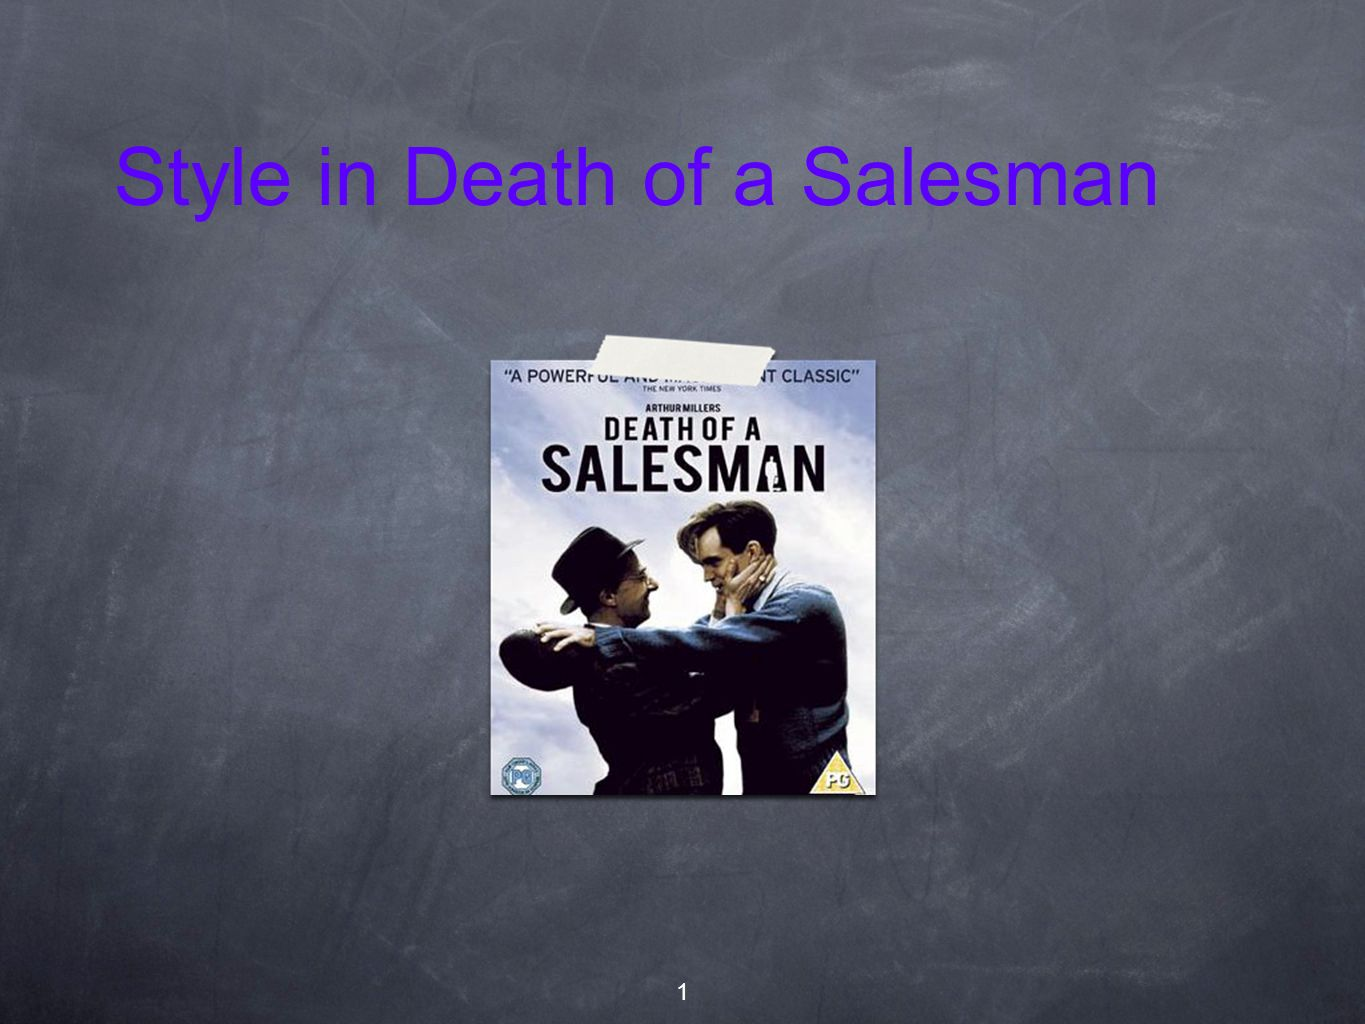 Style in Death of a Salesman